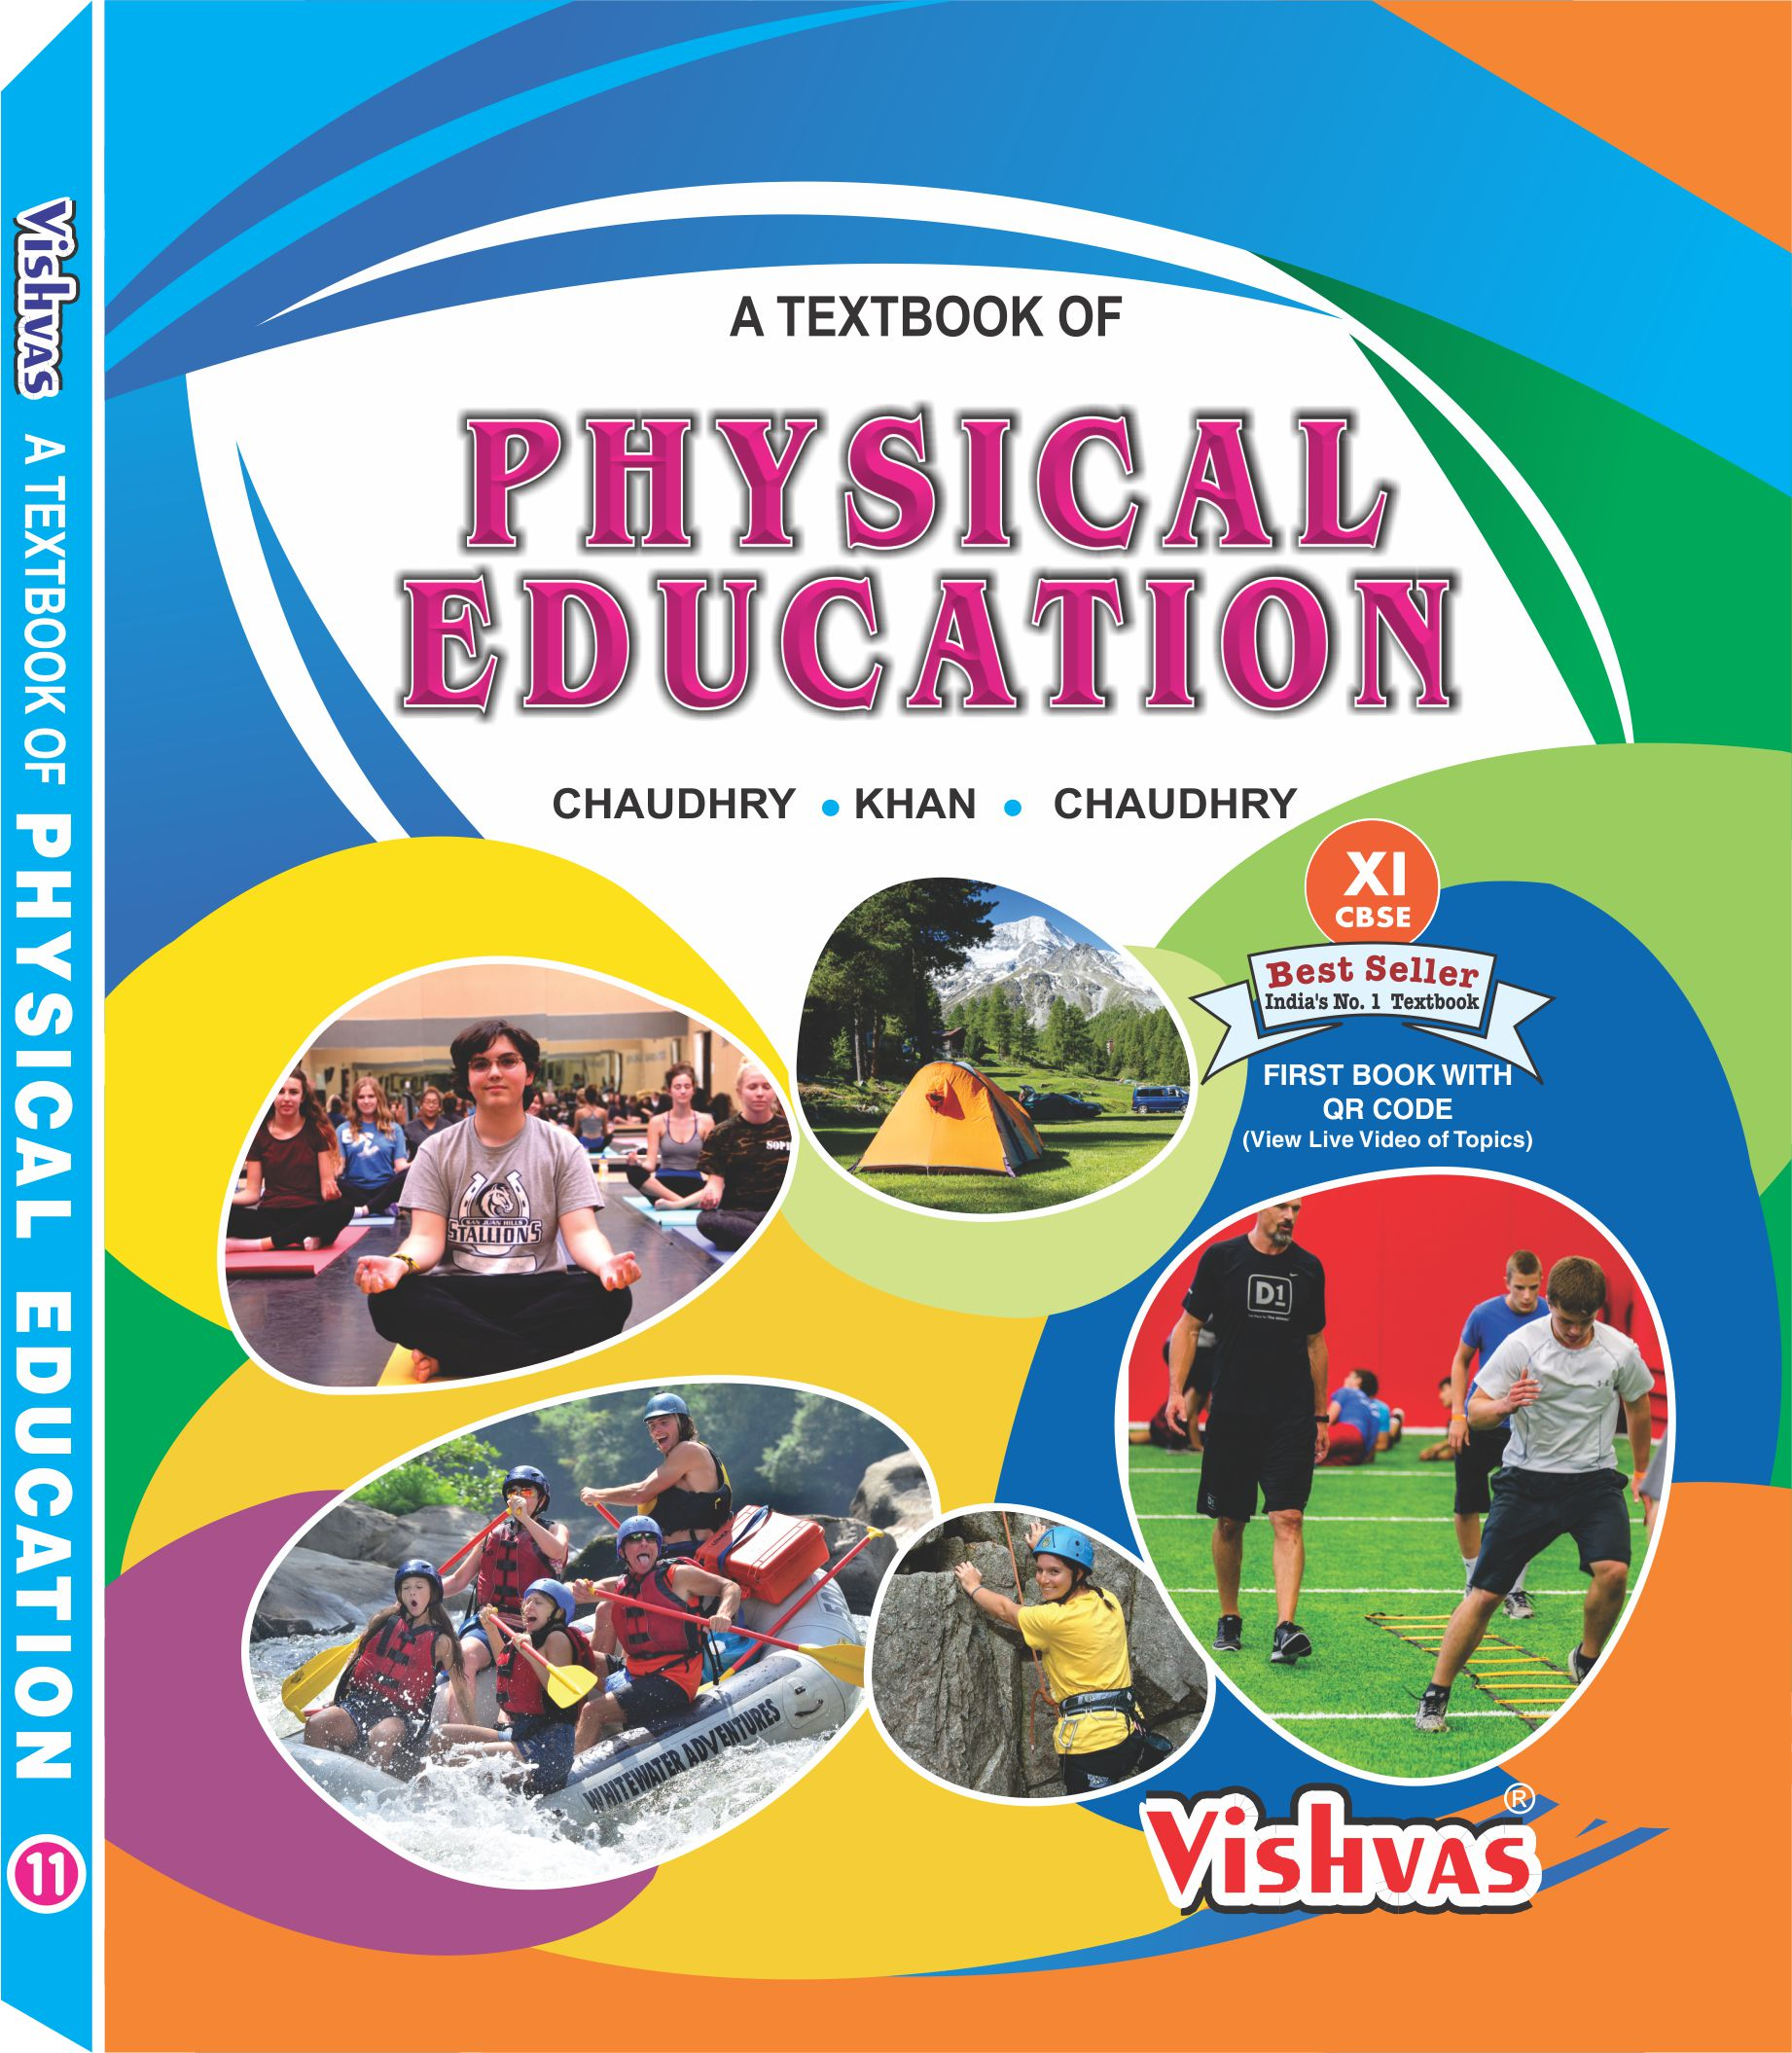 physical education textbook class xi cbse 2018 19 vishvasbooks